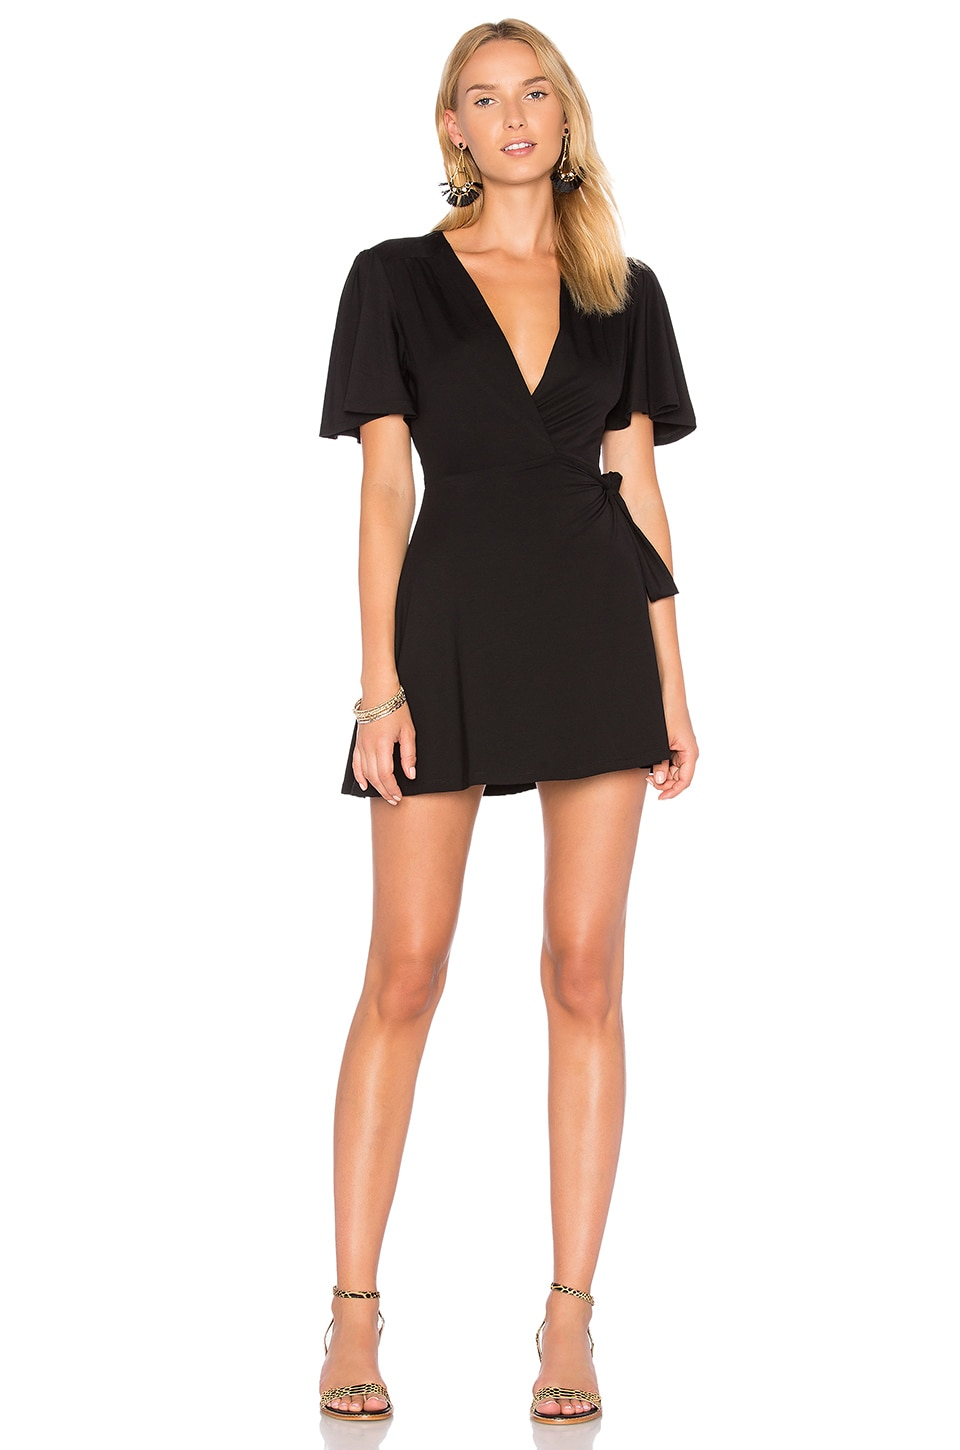 Privacy Please Brisco Dress in Black | REVOLVE